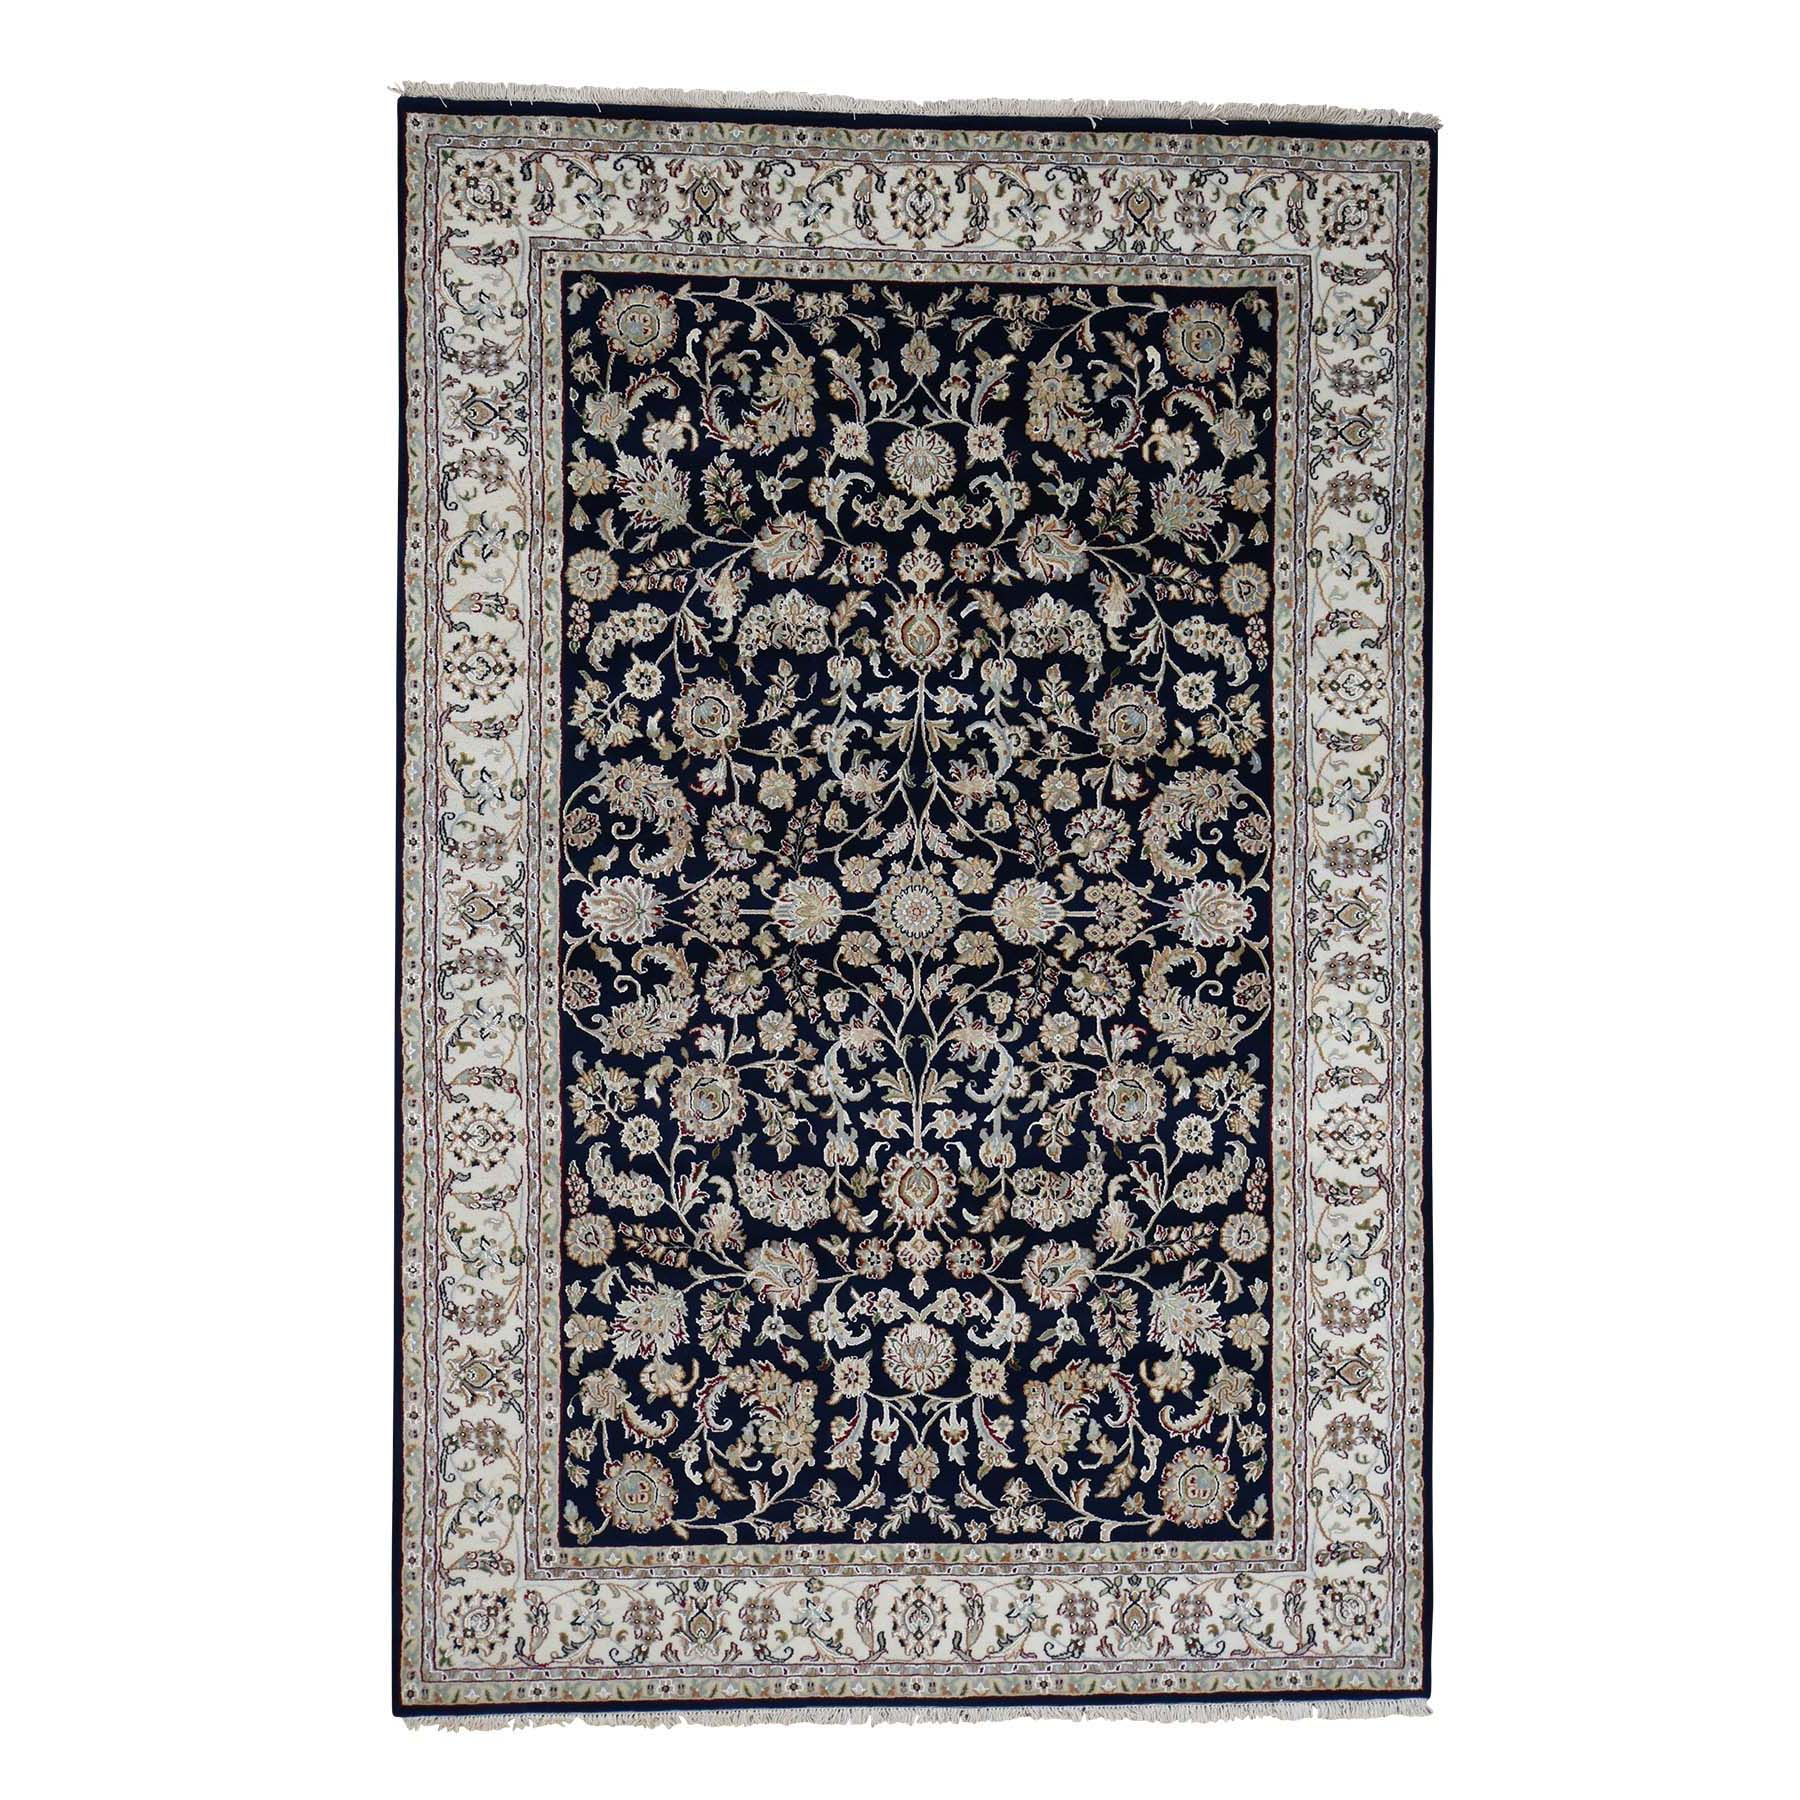 Pirniakan Collection Hand Knotted Blue Rug No: 182044